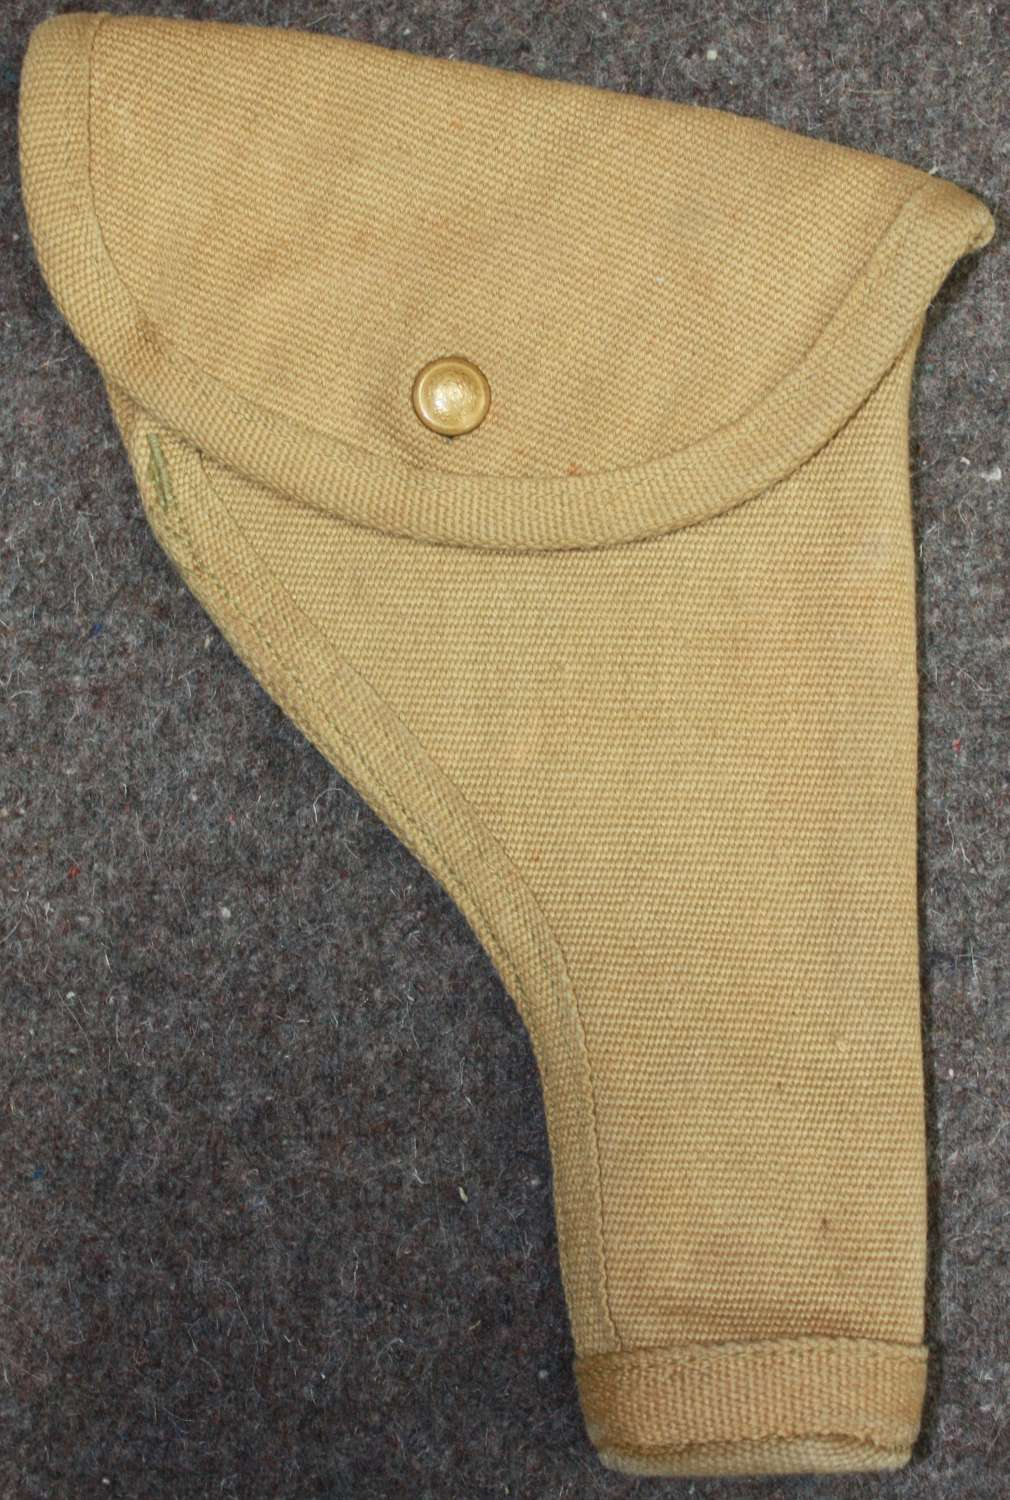 A WWII CANADIAN ROUNDED HOLSTER 1942 DATED